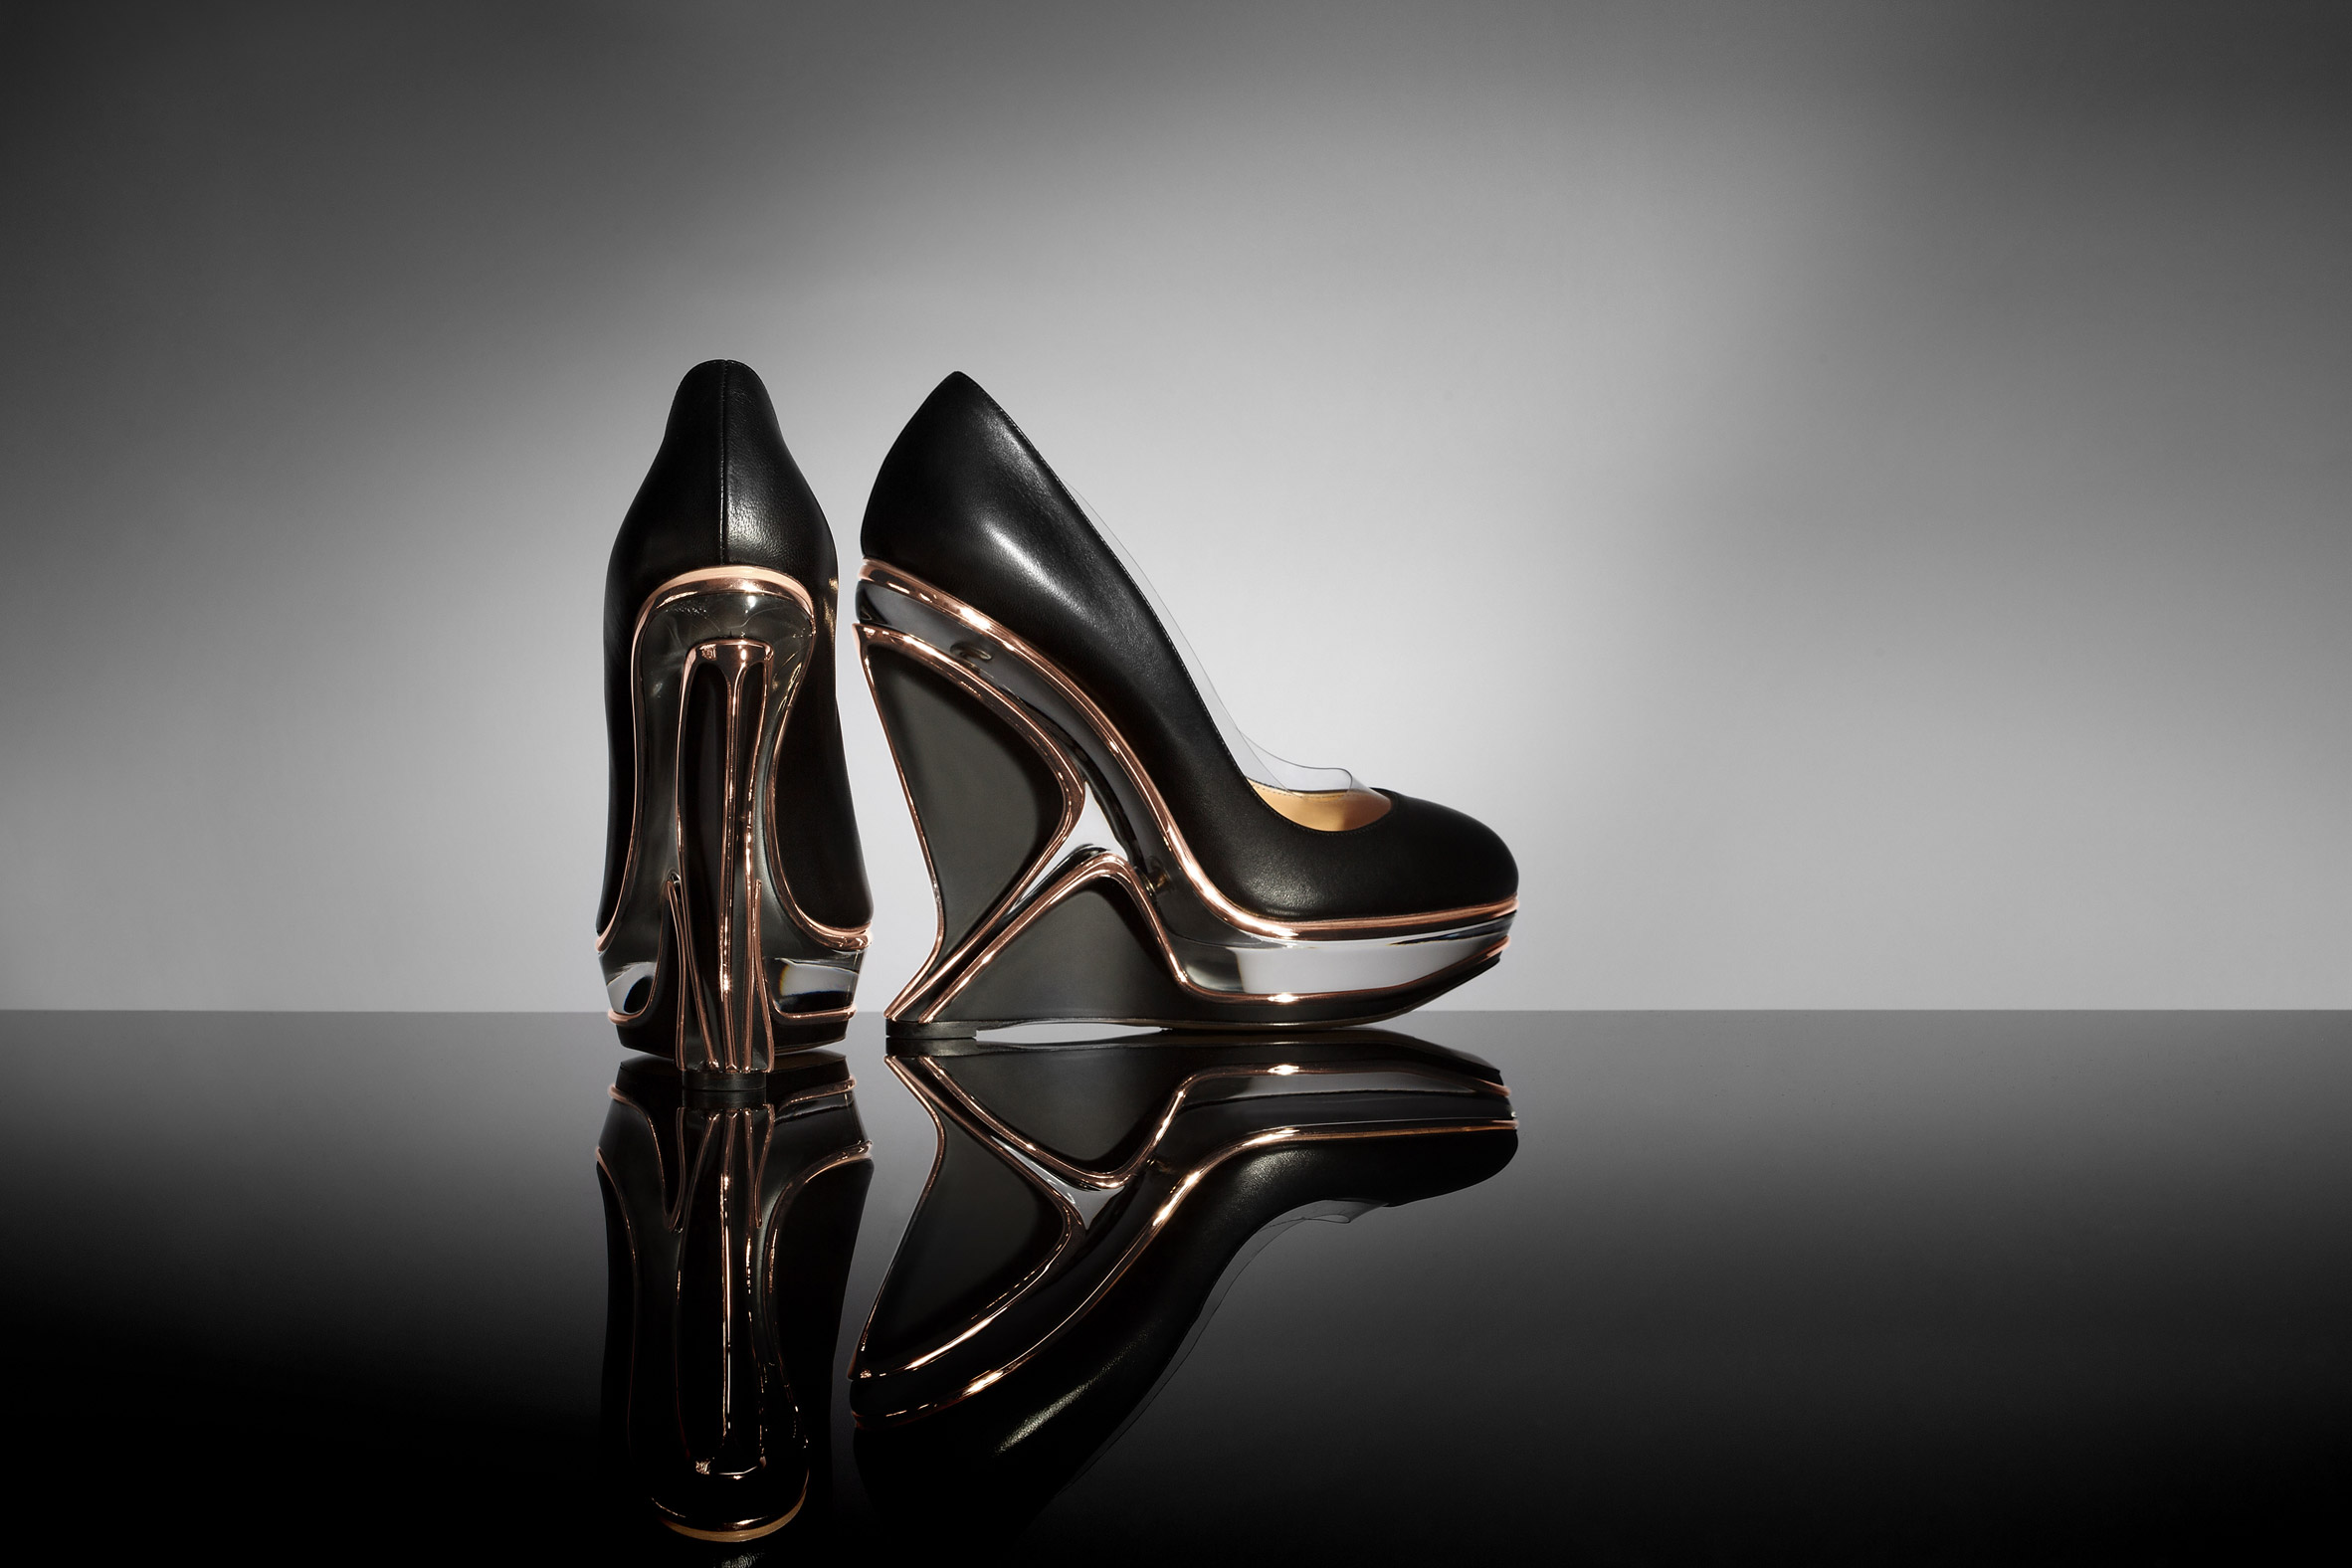 Charlotte Olympia launches fashion accessories designed in collaboration with Zaha Hadid